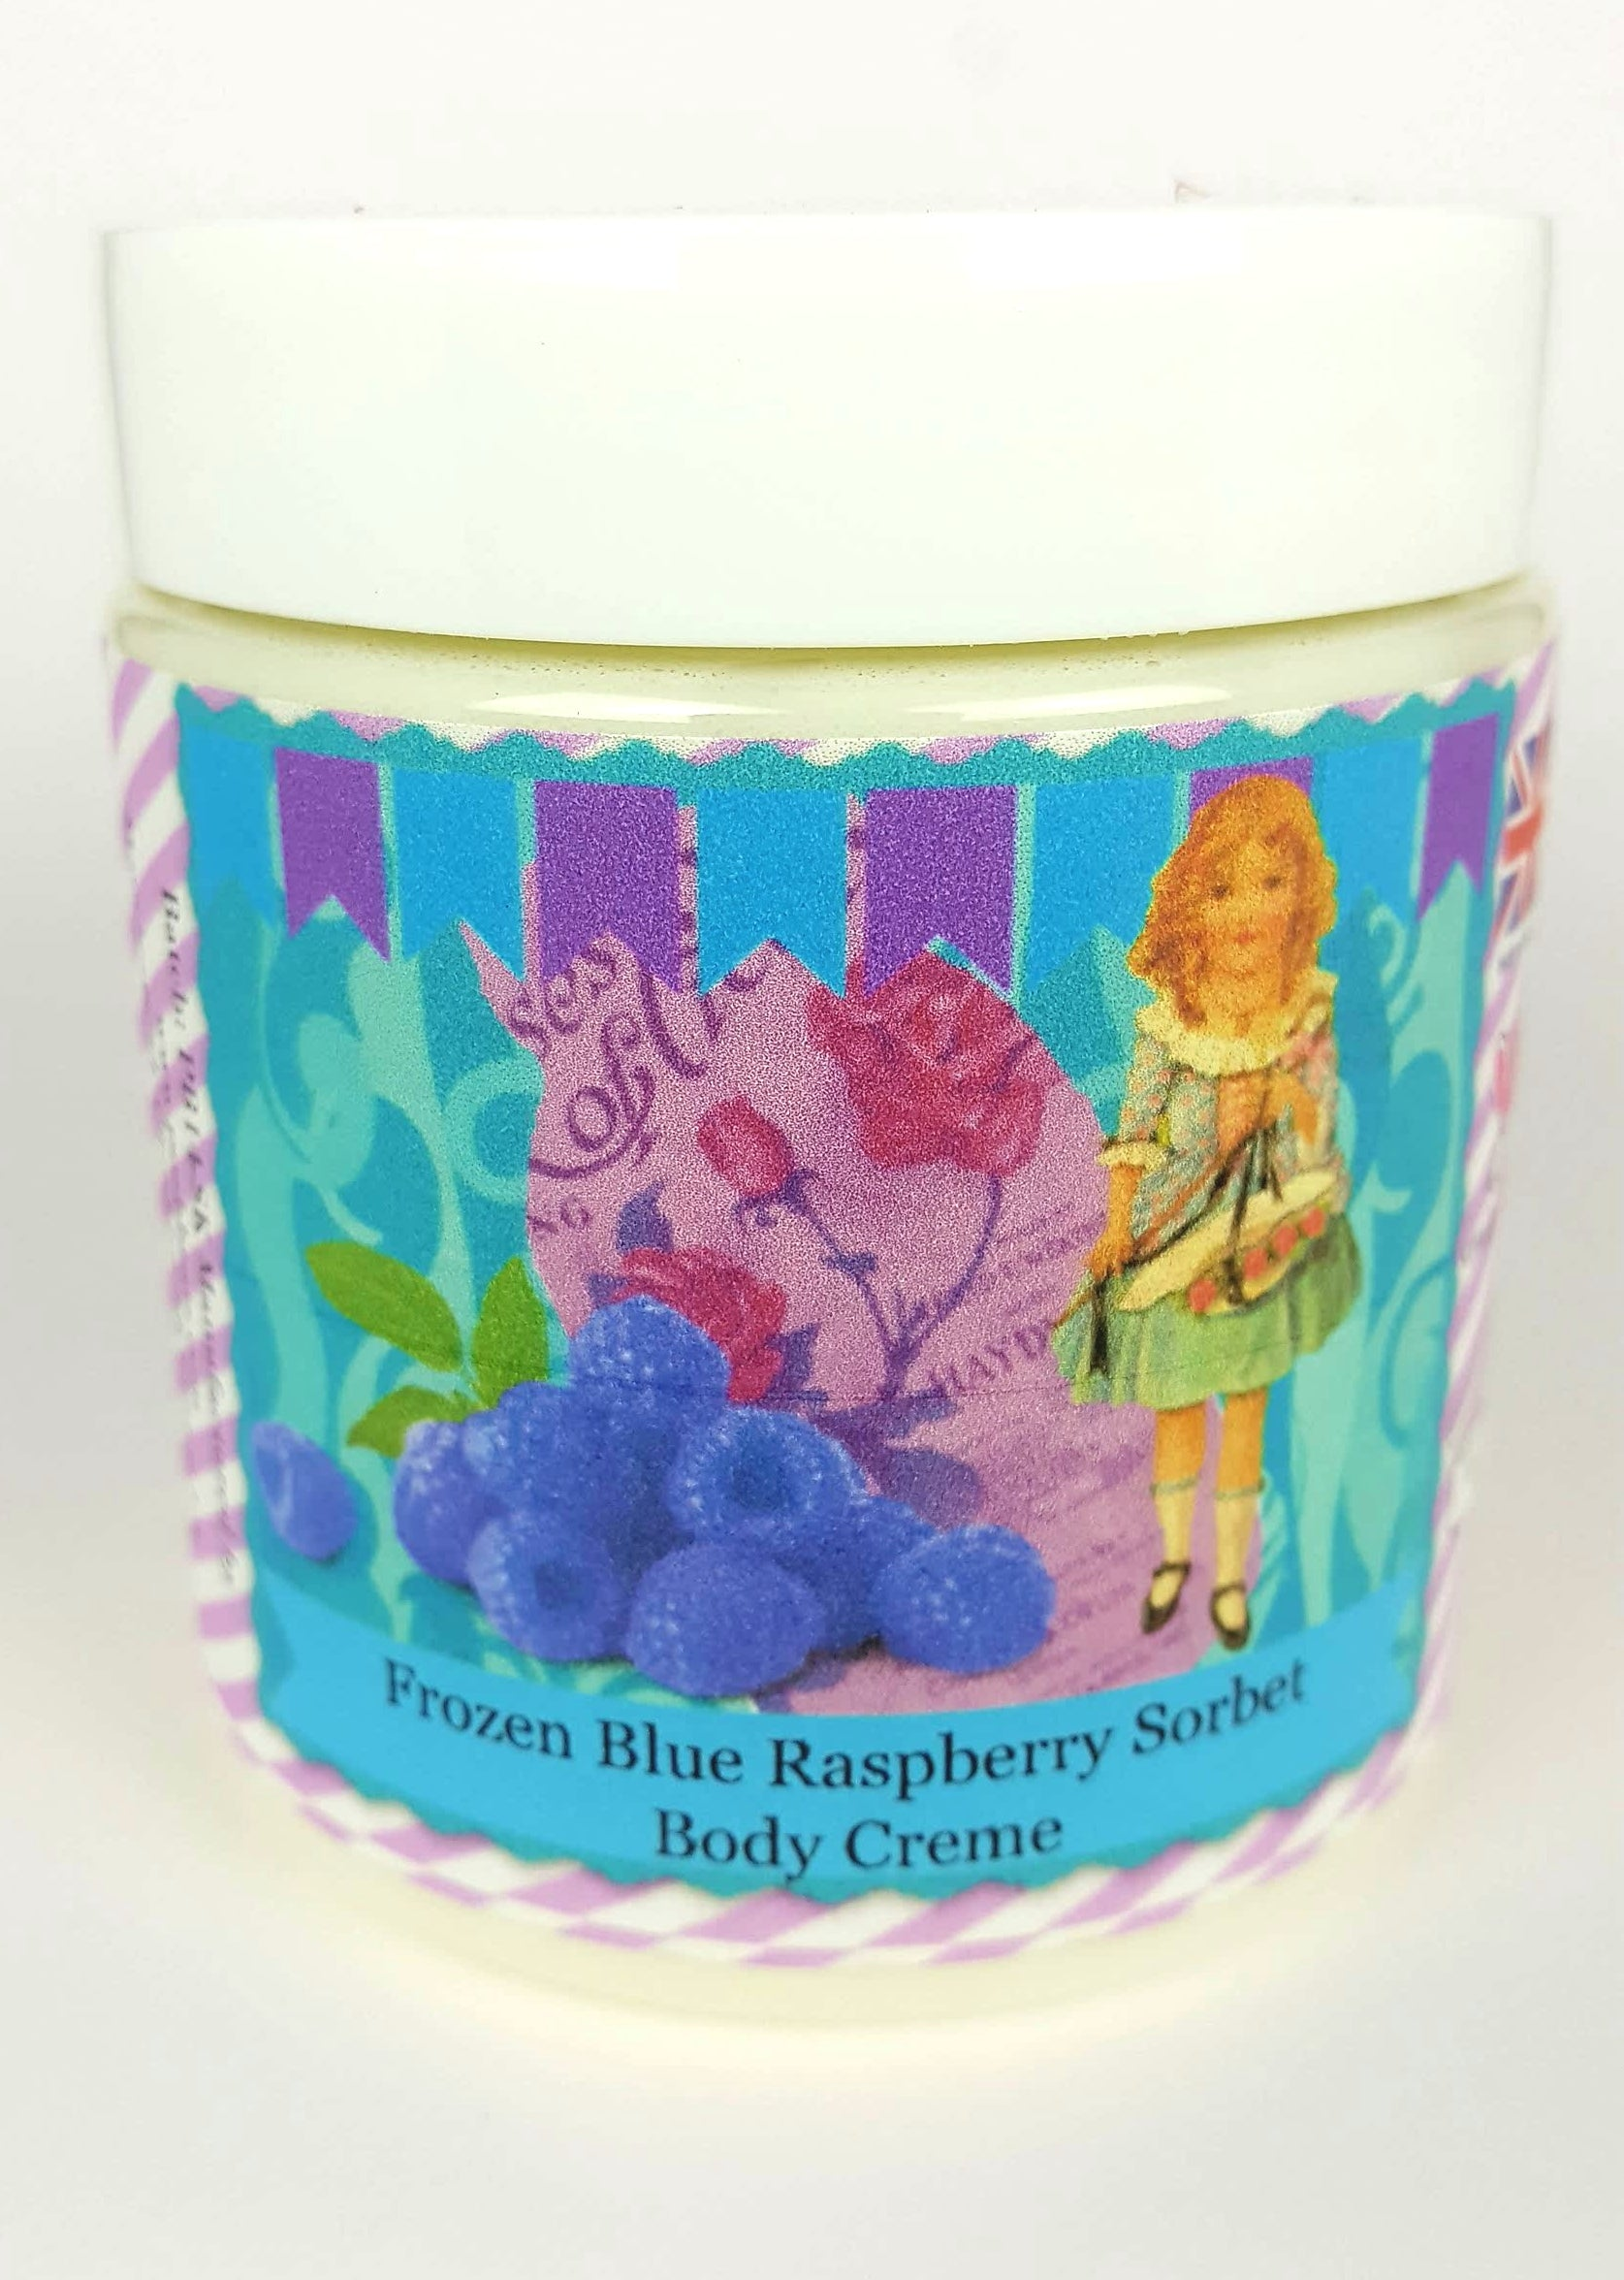 Frozen Blue Raspberry Sorbet Luxury Body Creme VEGAN